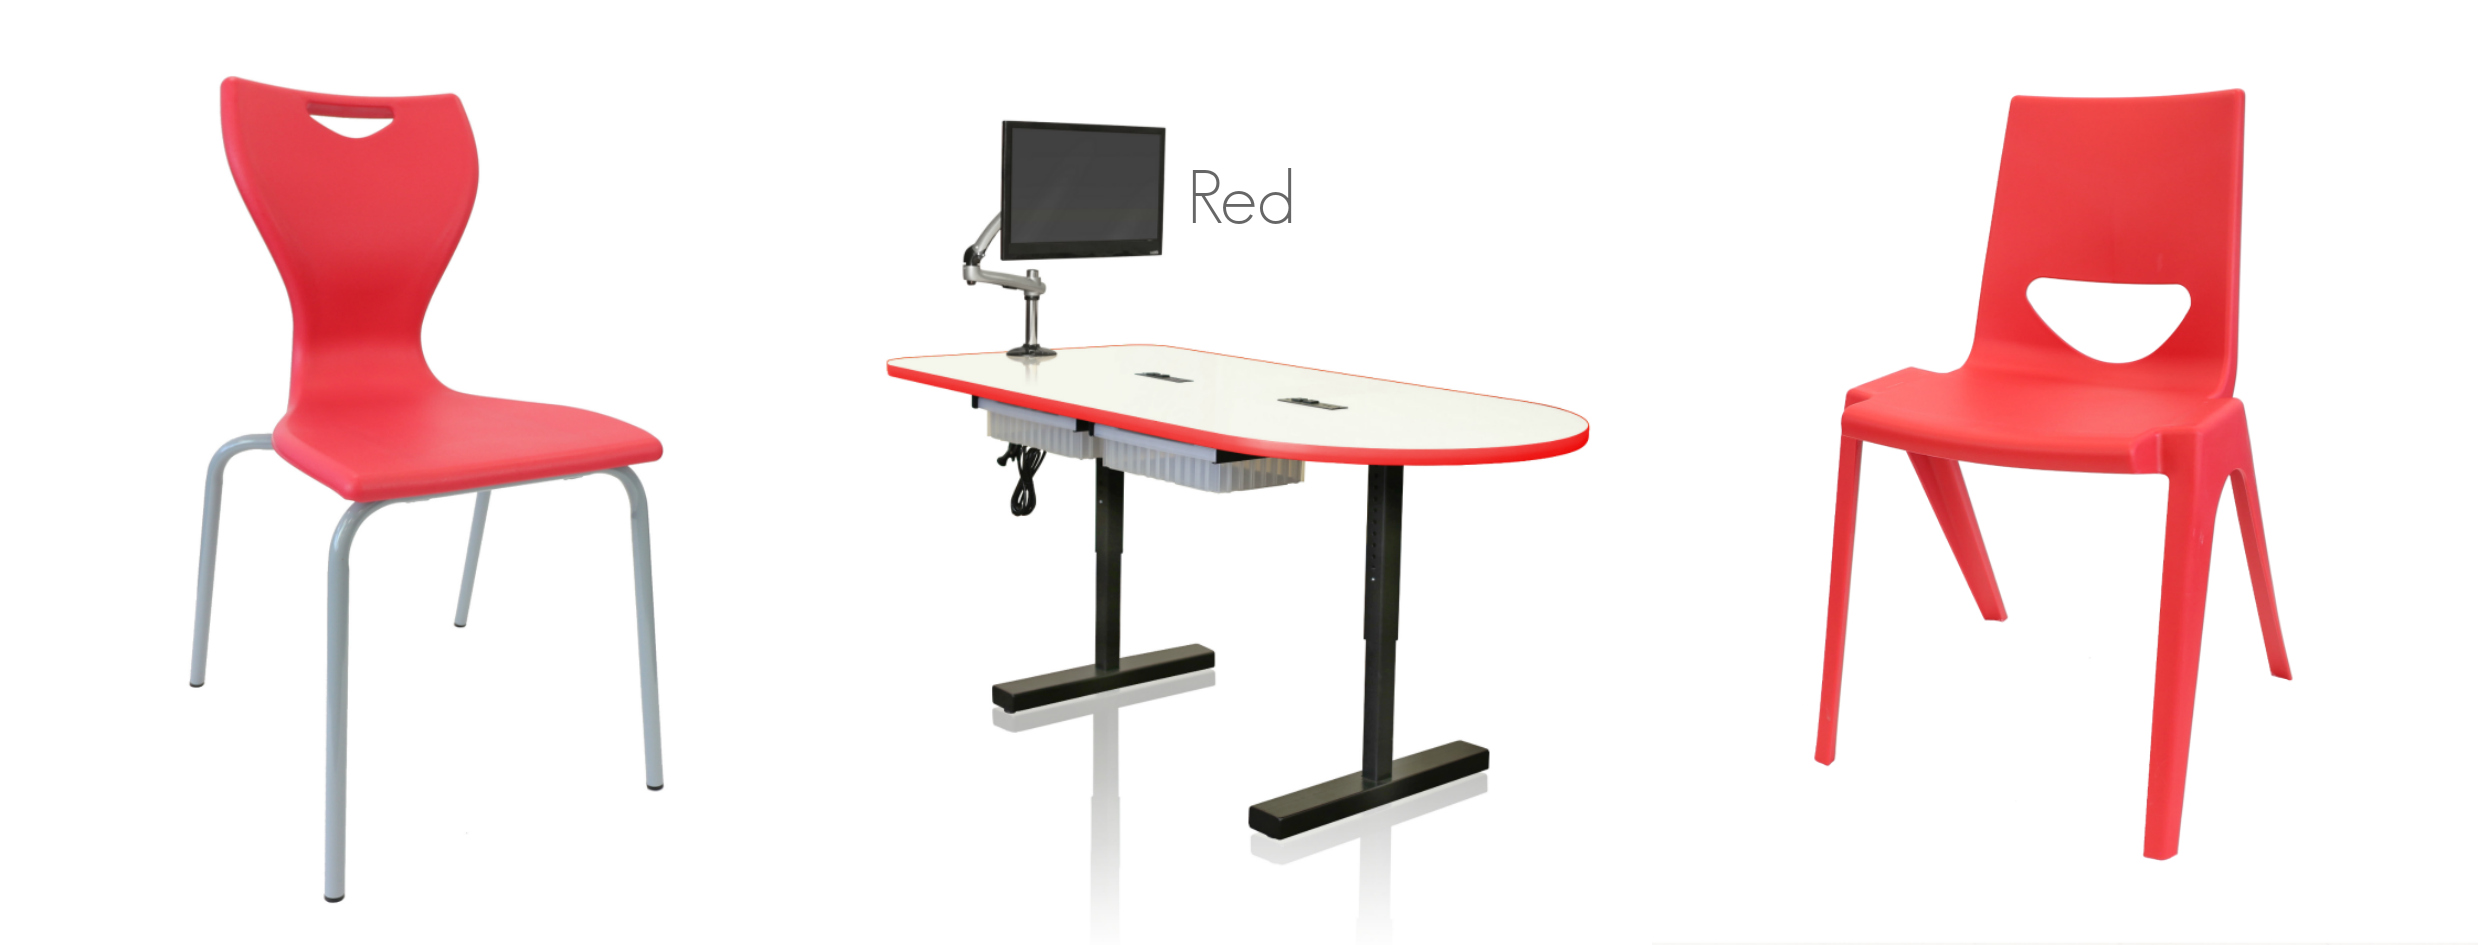 CEF Red Table and Chairs with name.jpg